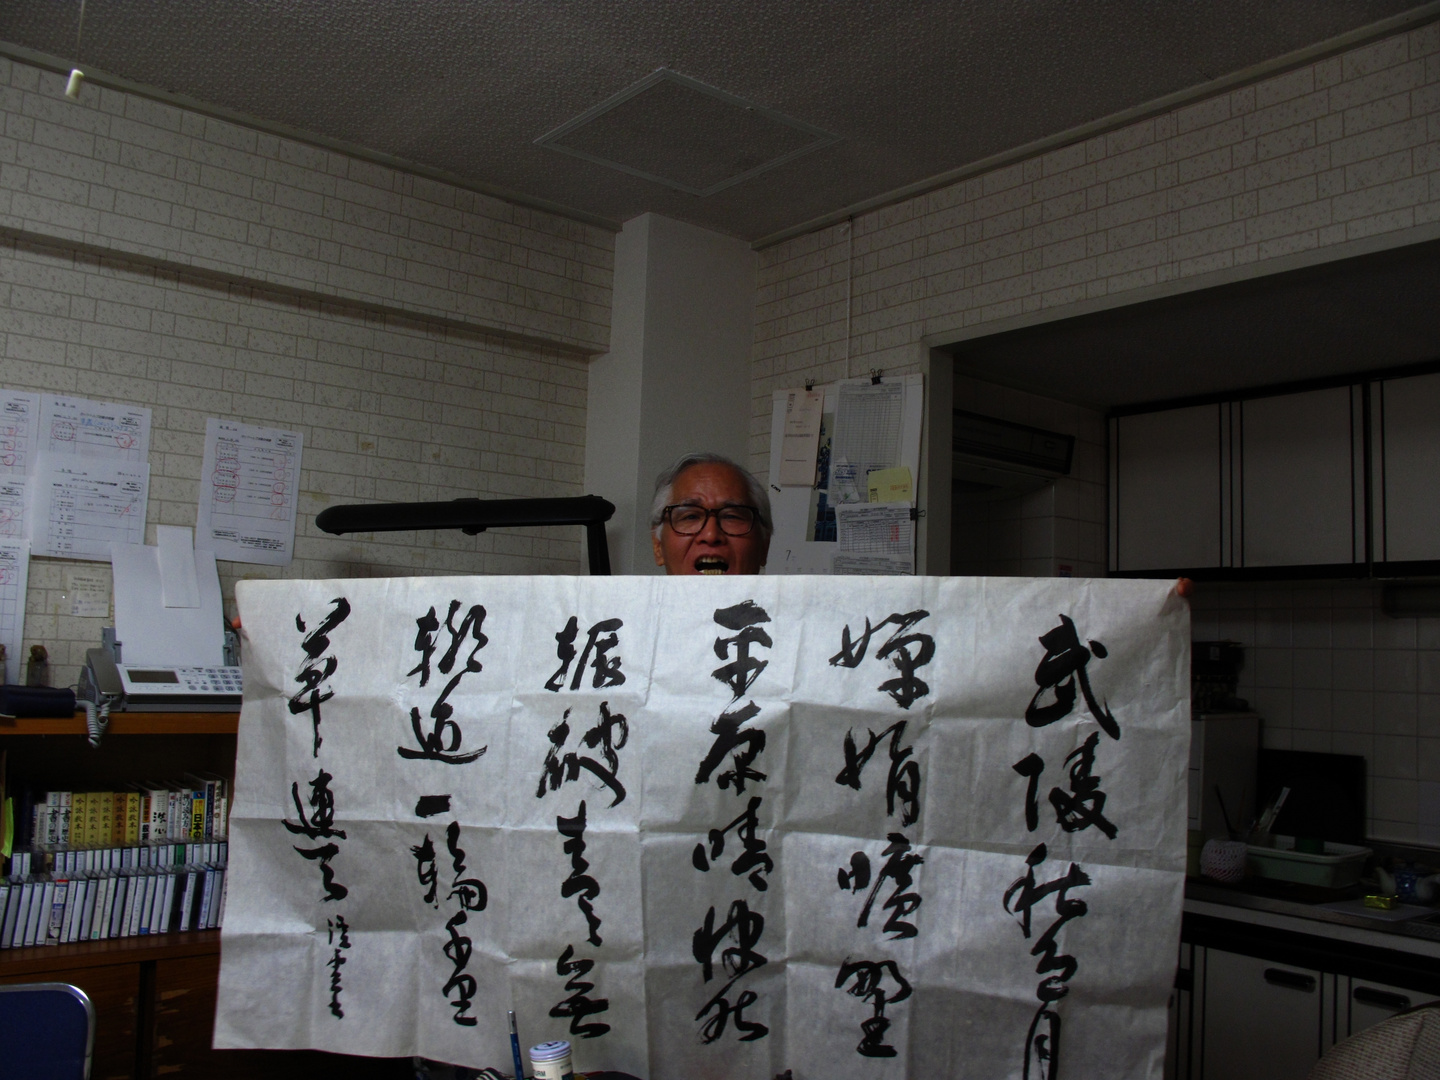 Calligraphy master. Japan. 2013